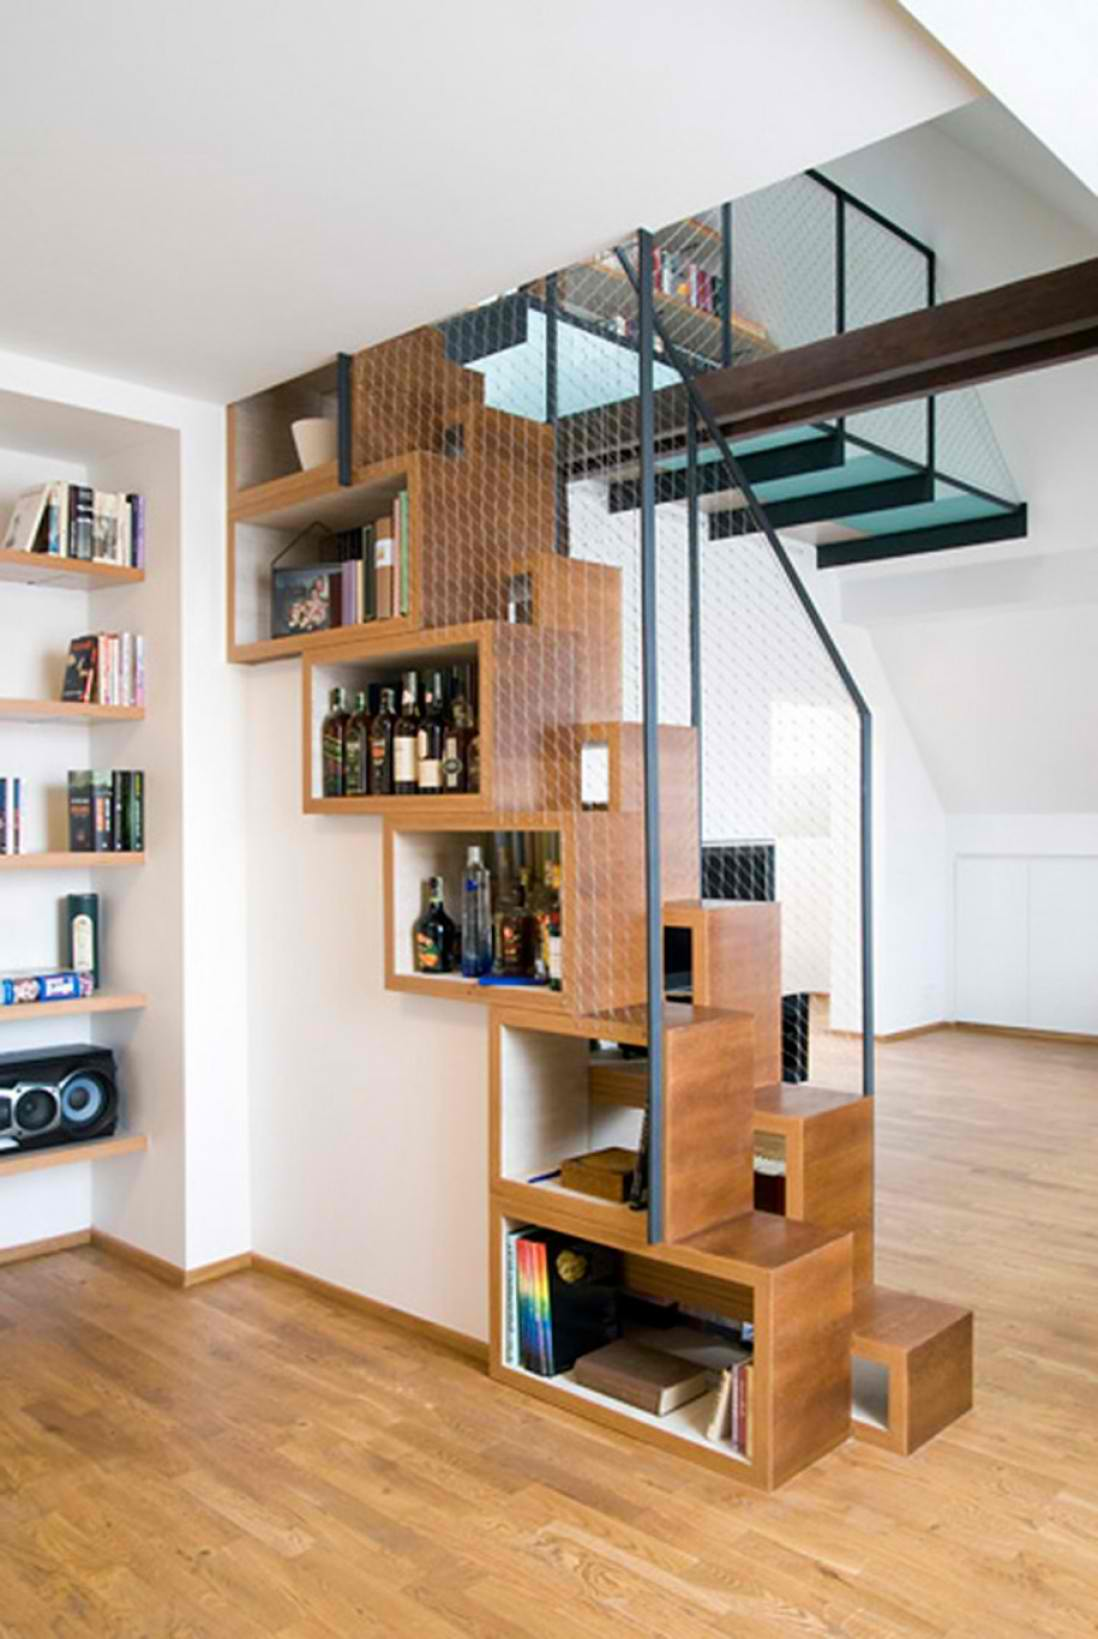 7 smart design solutions for small spaces gawin for Small spaces ideas for small homes